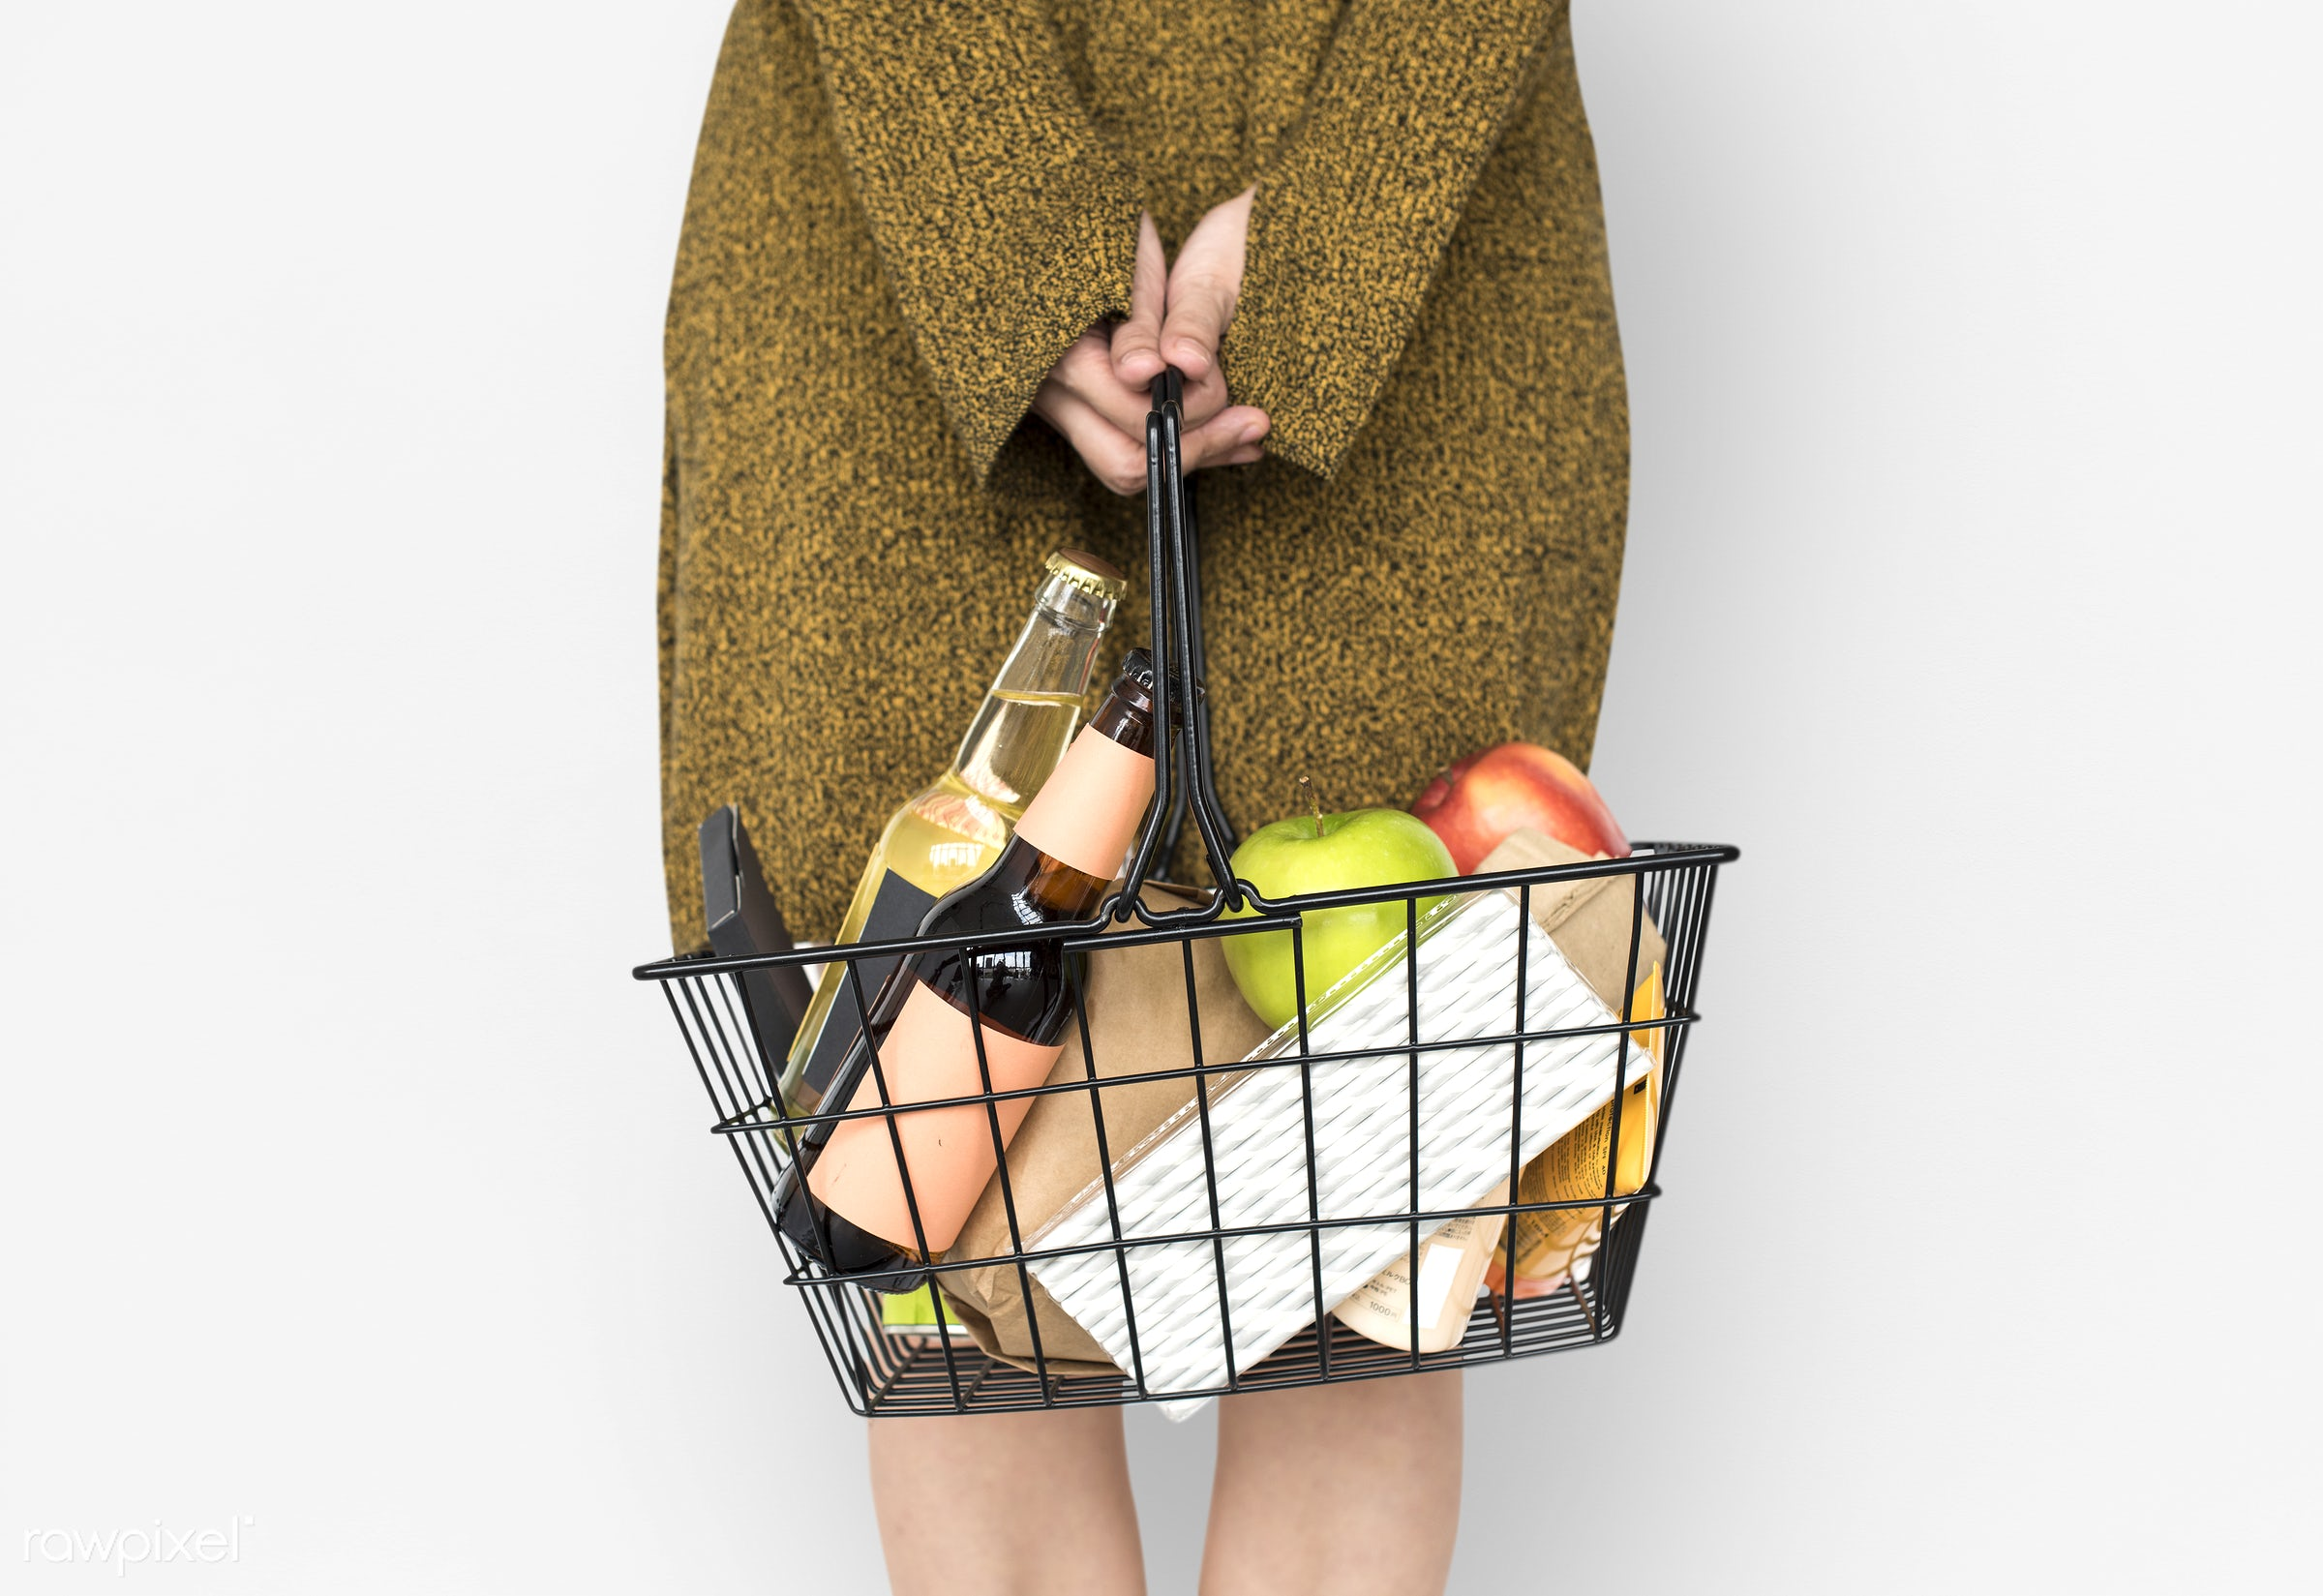 studio, grocery, person, isolated on white, goods, people, drinks, girl, carrying, solo, woman, casual, wine, isolated,...